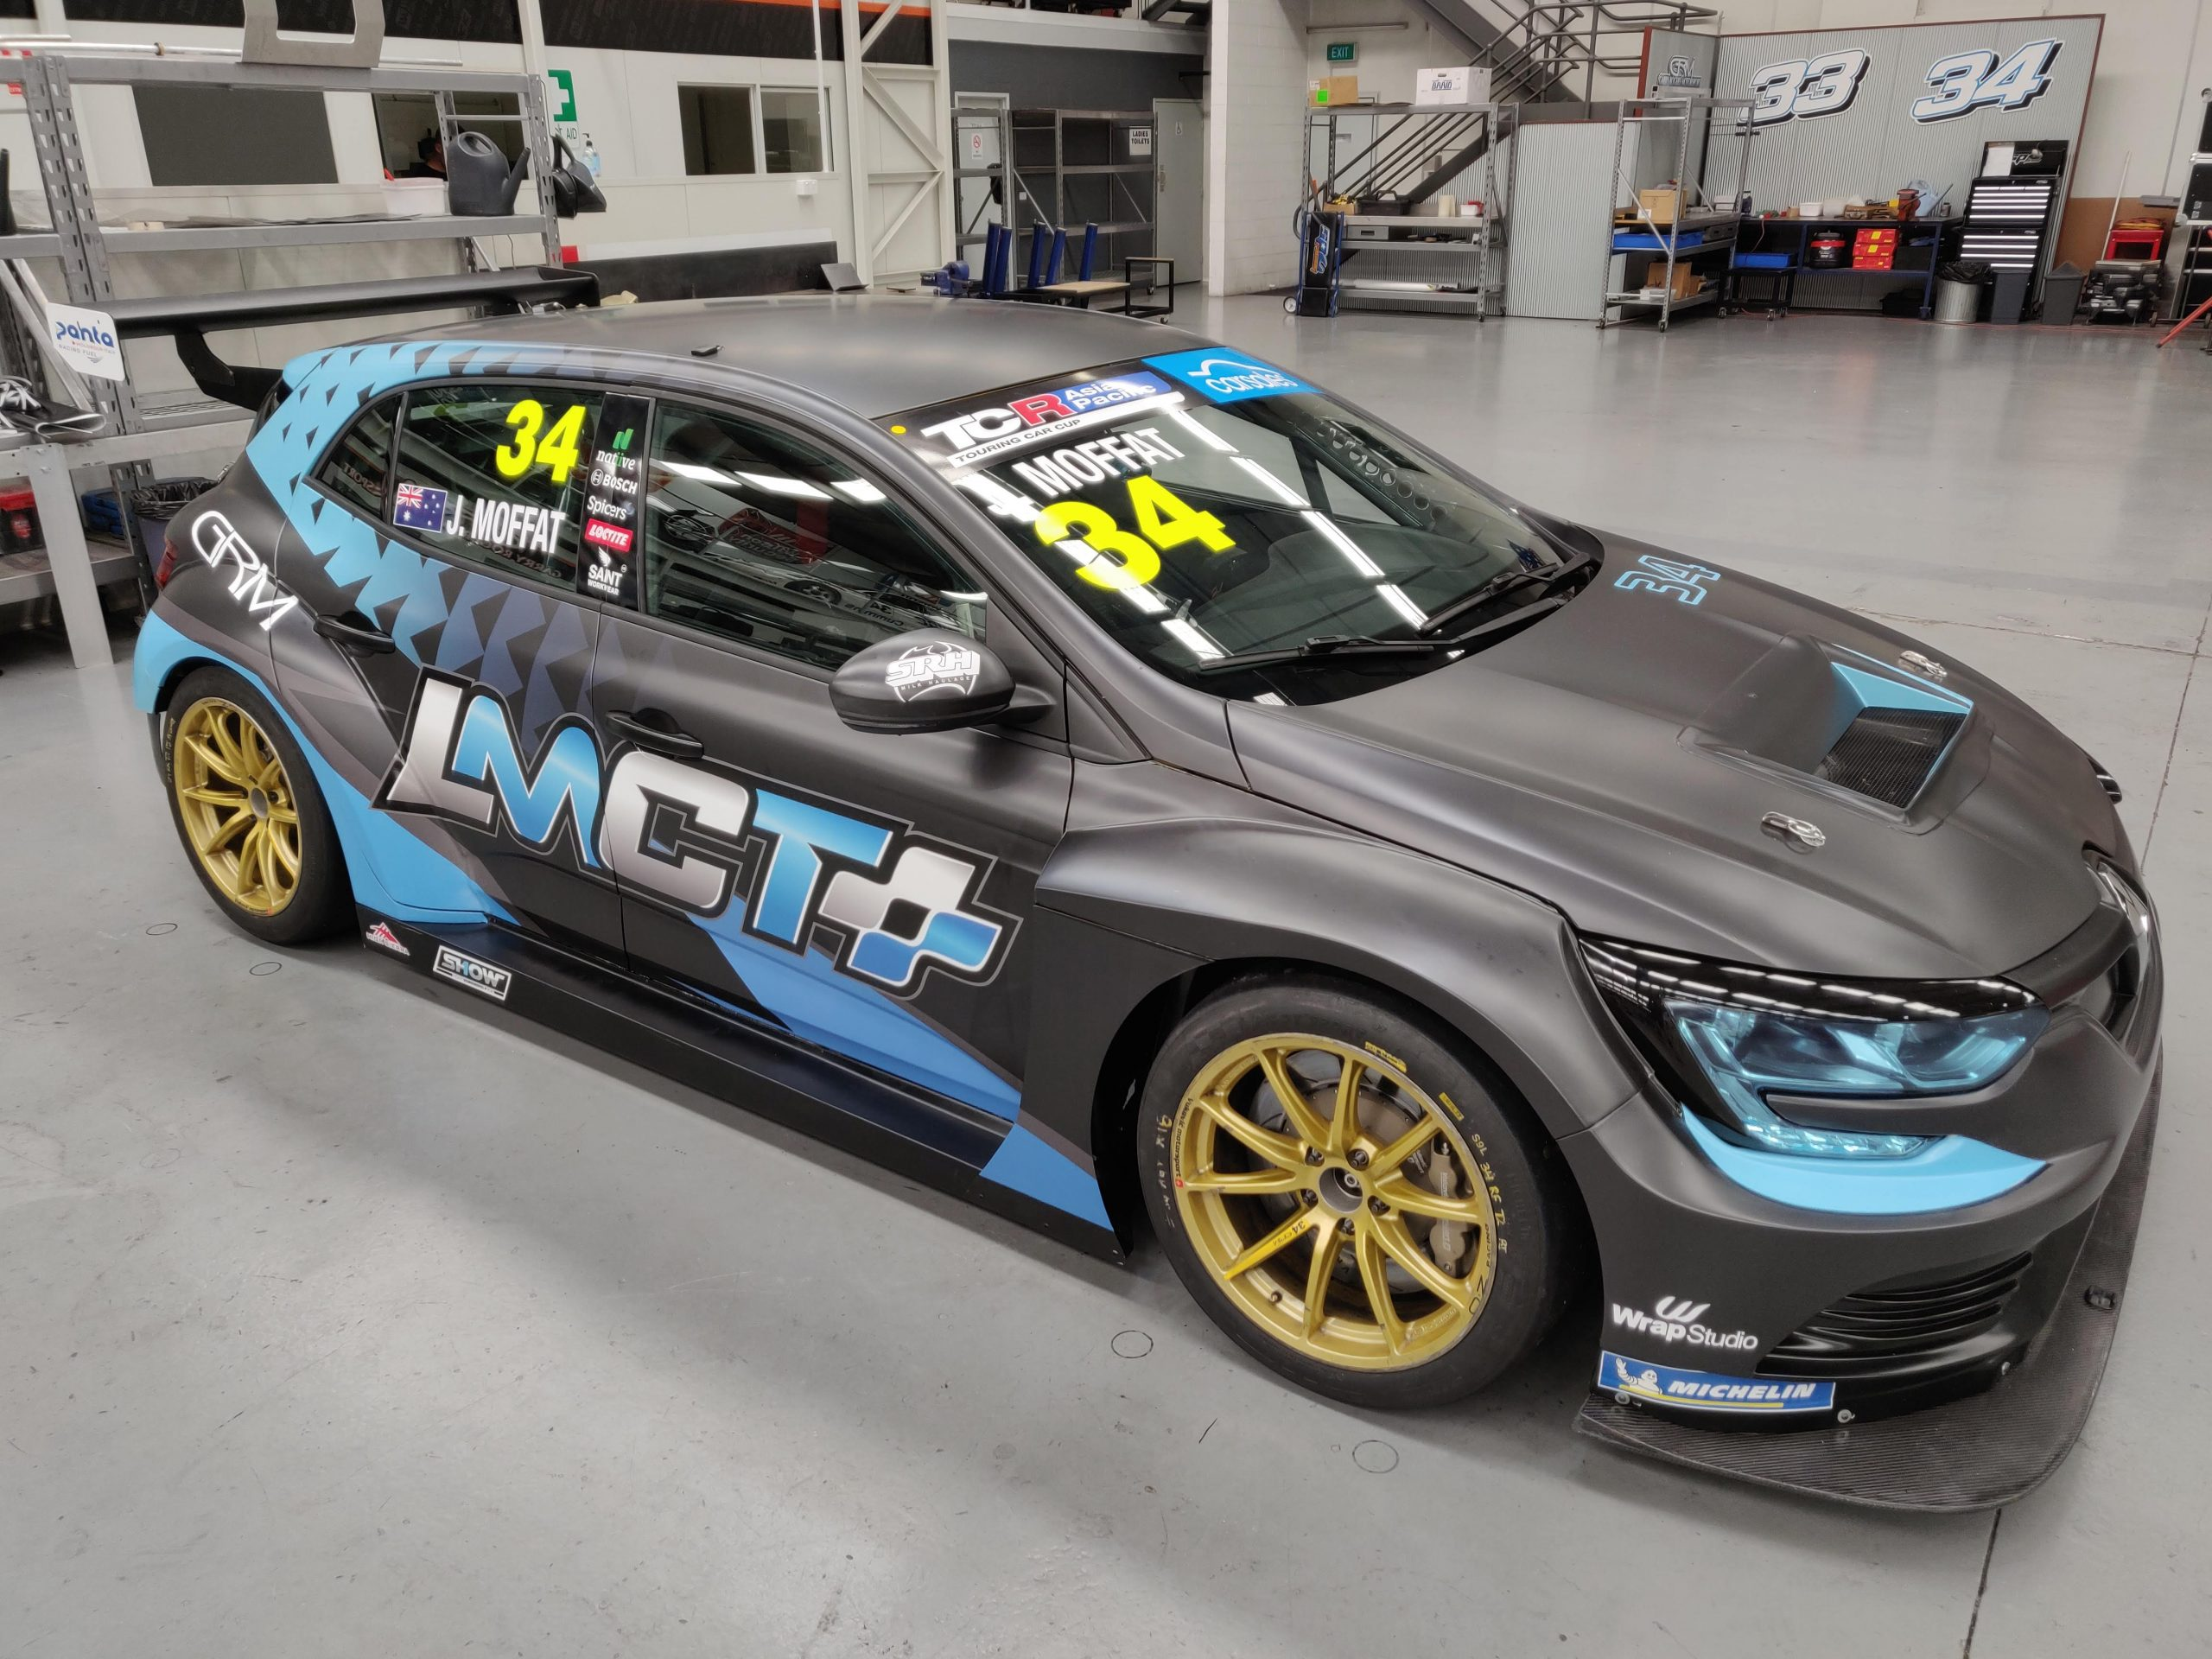 New look and sponsor for James Moffat's TCR Renault